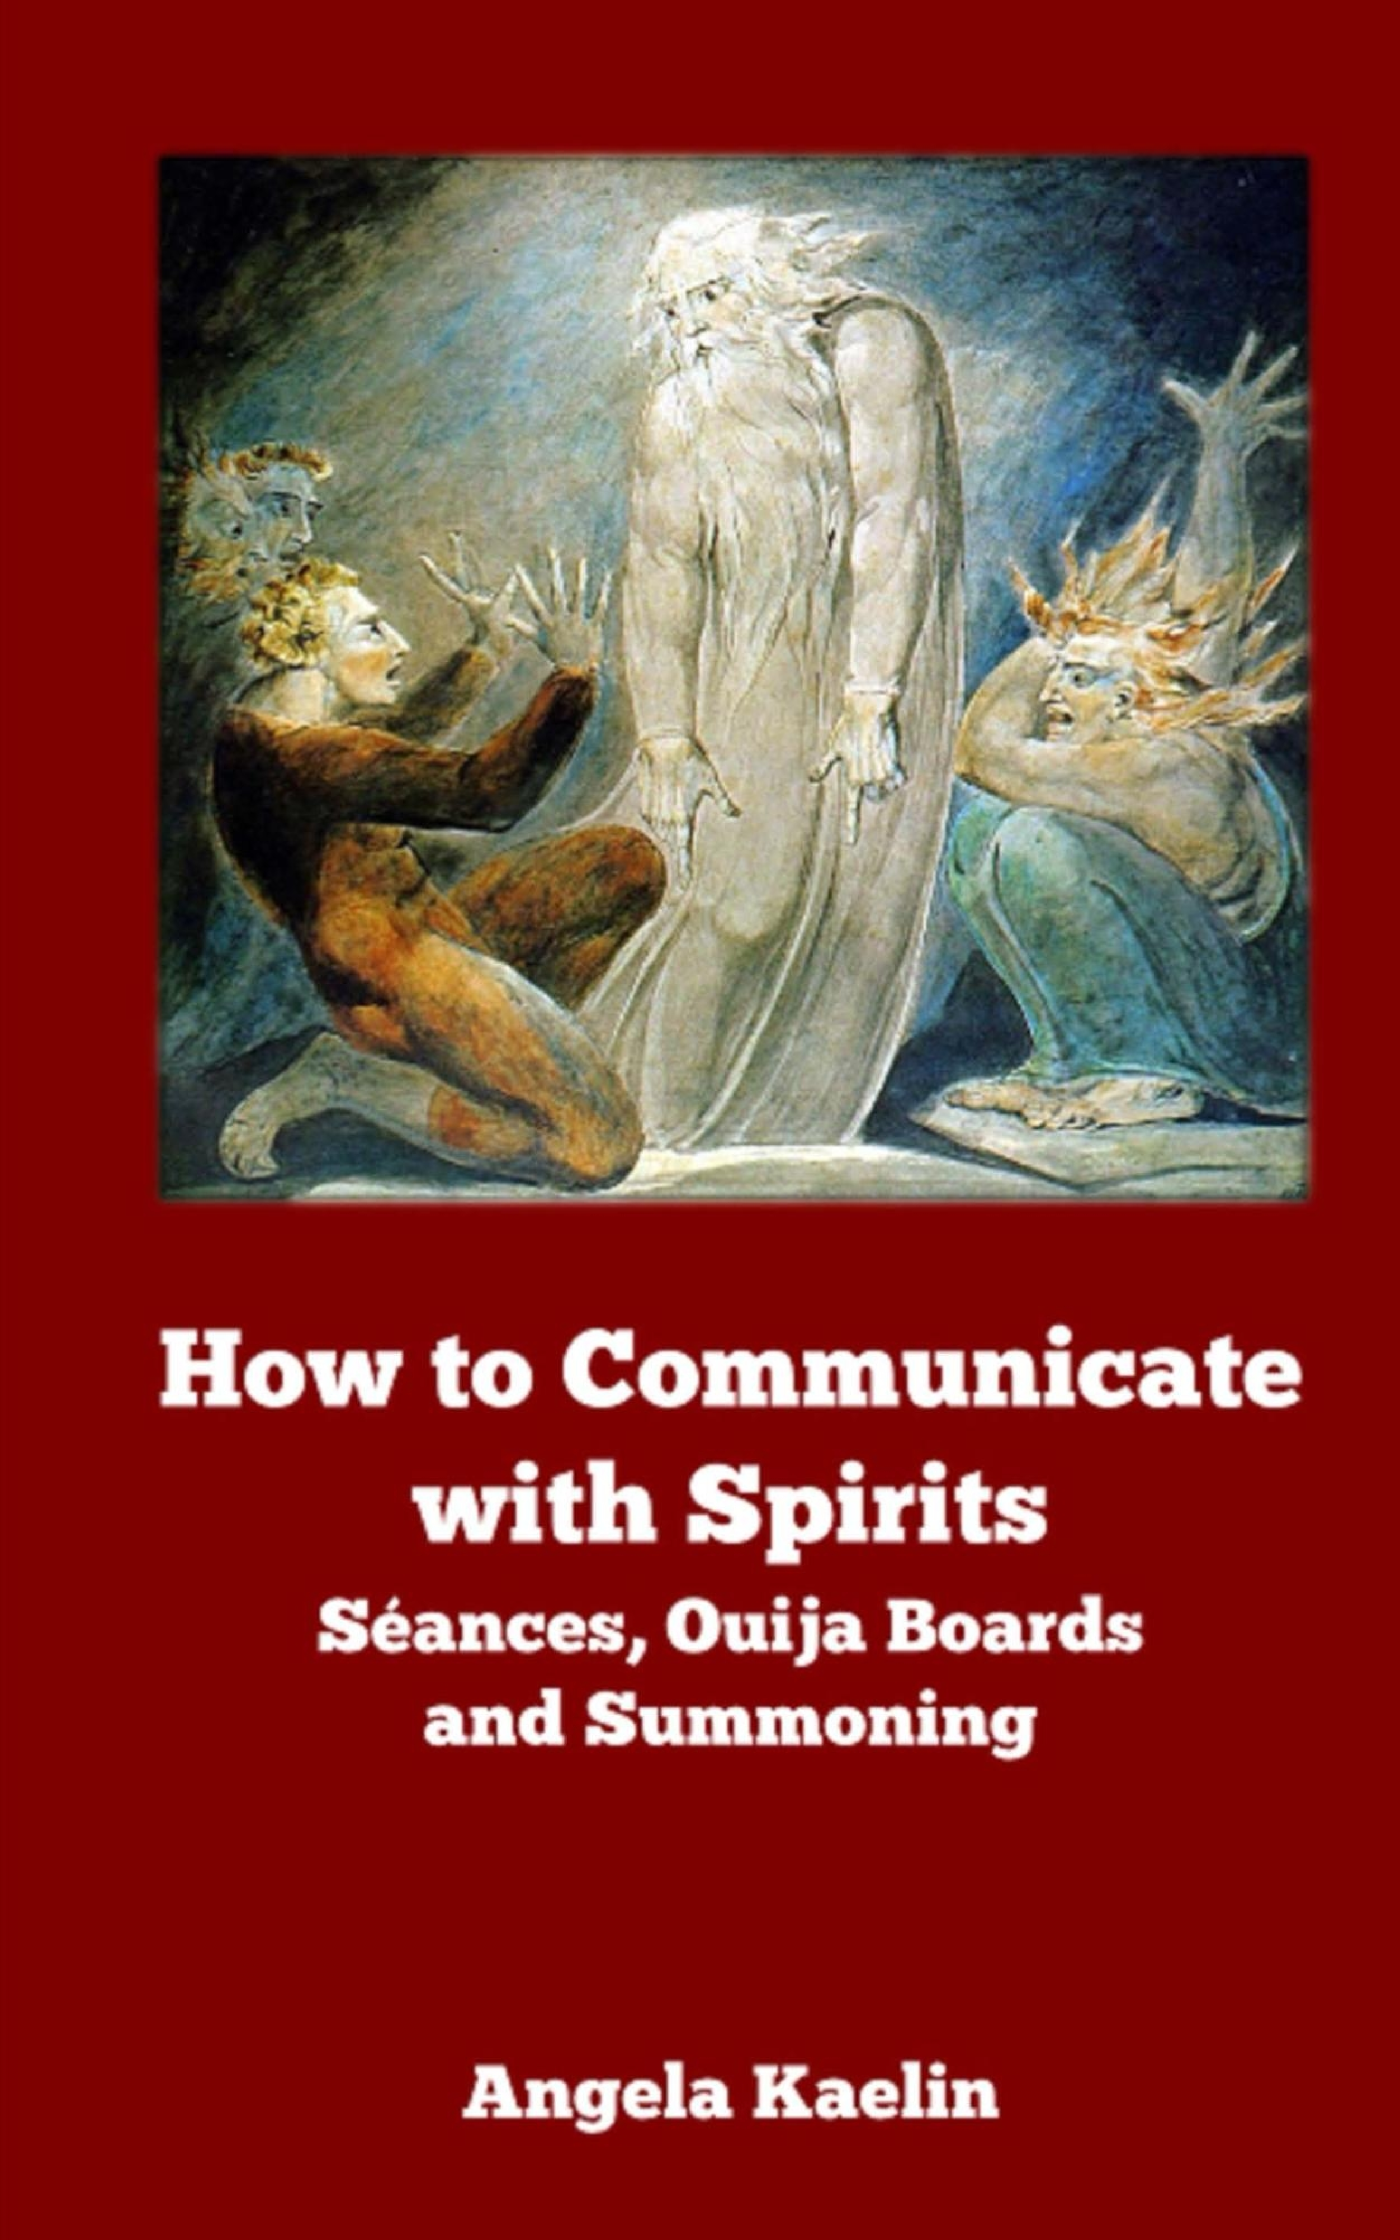 How to communicate with Spirits: Seances, Ouija boards and Summoning by Angela Kaelin